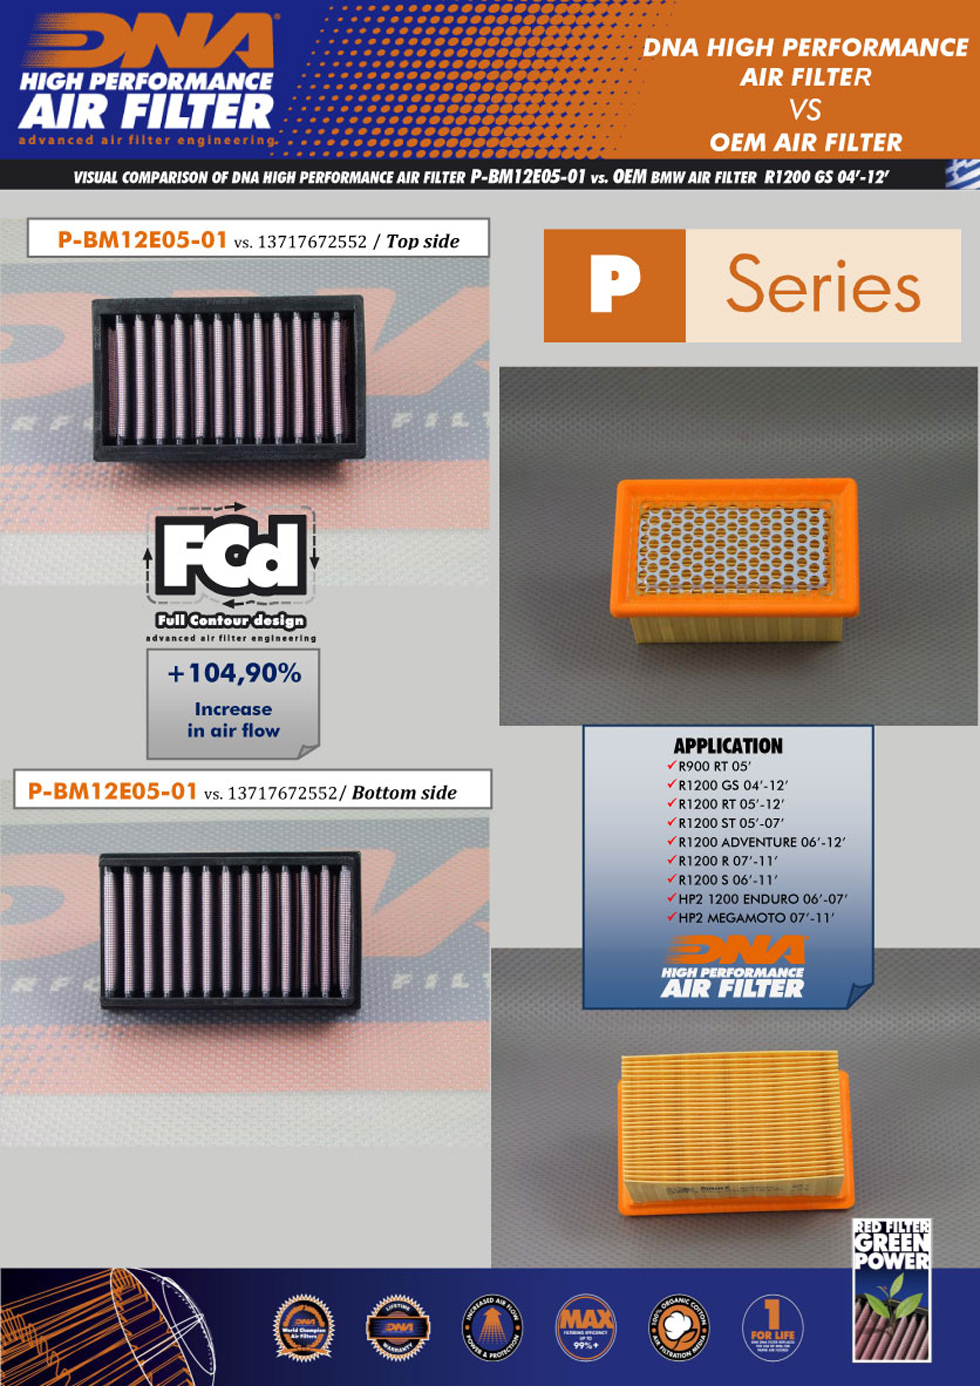 DNA Filters have superior airflow compared to stock bmw oem filters